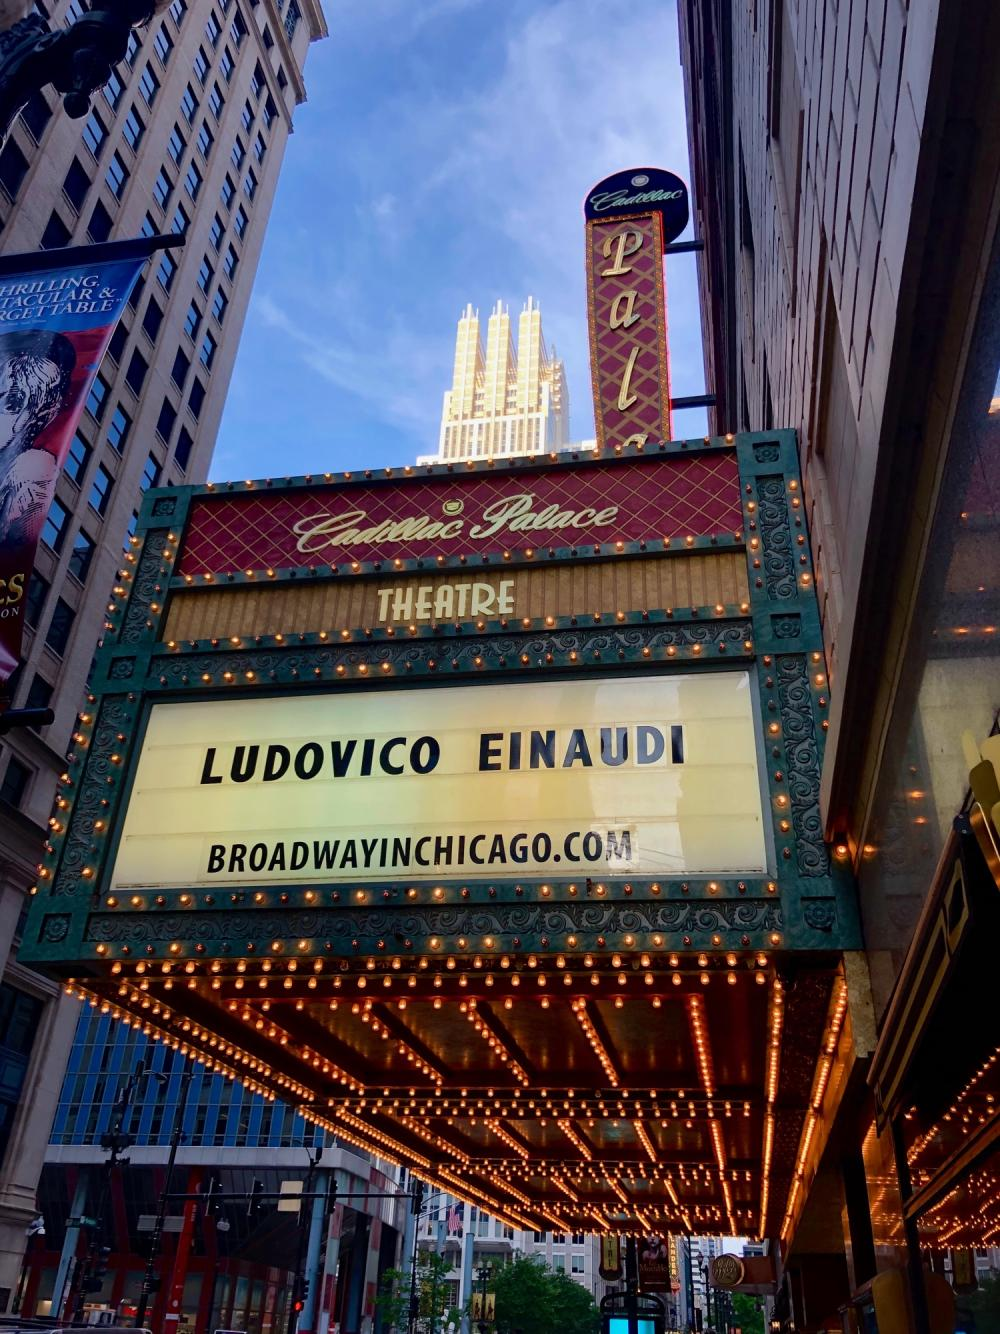 Cadillac Palace Ludovico Einaudio on the marquee